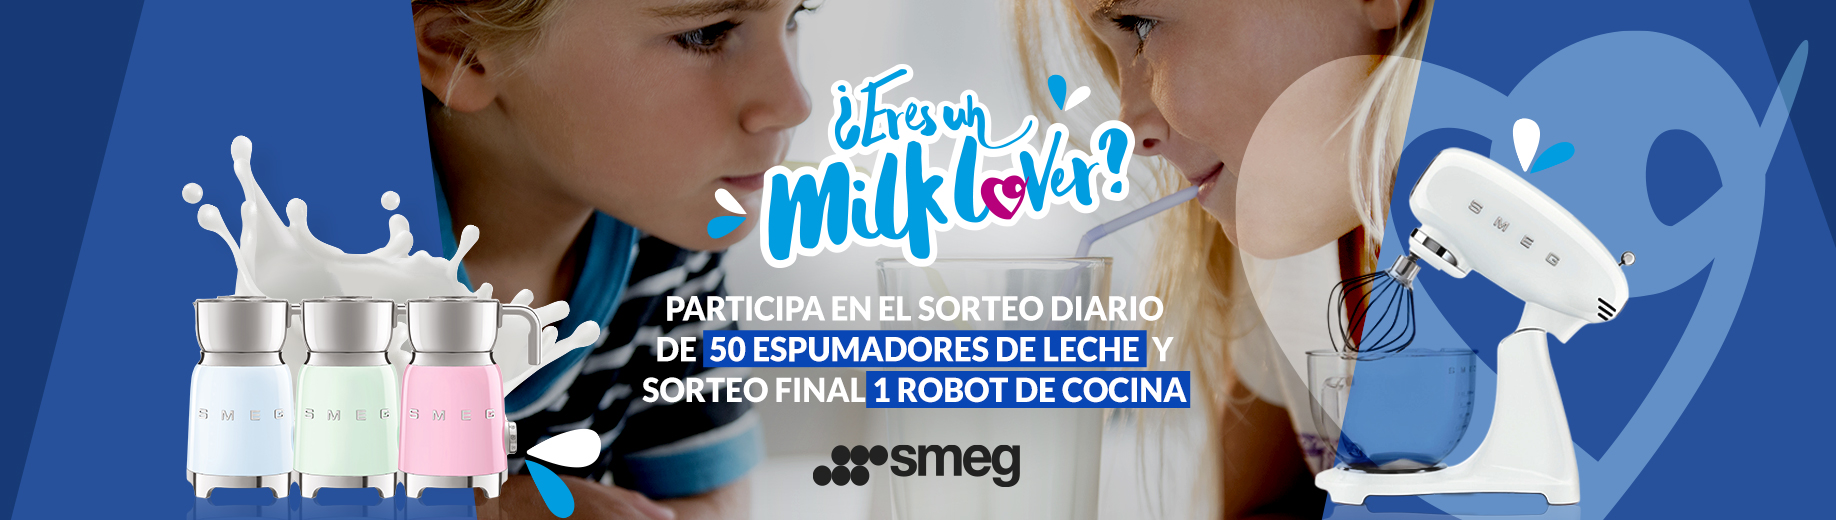 Milk Lovers Leche Celta y Smeg